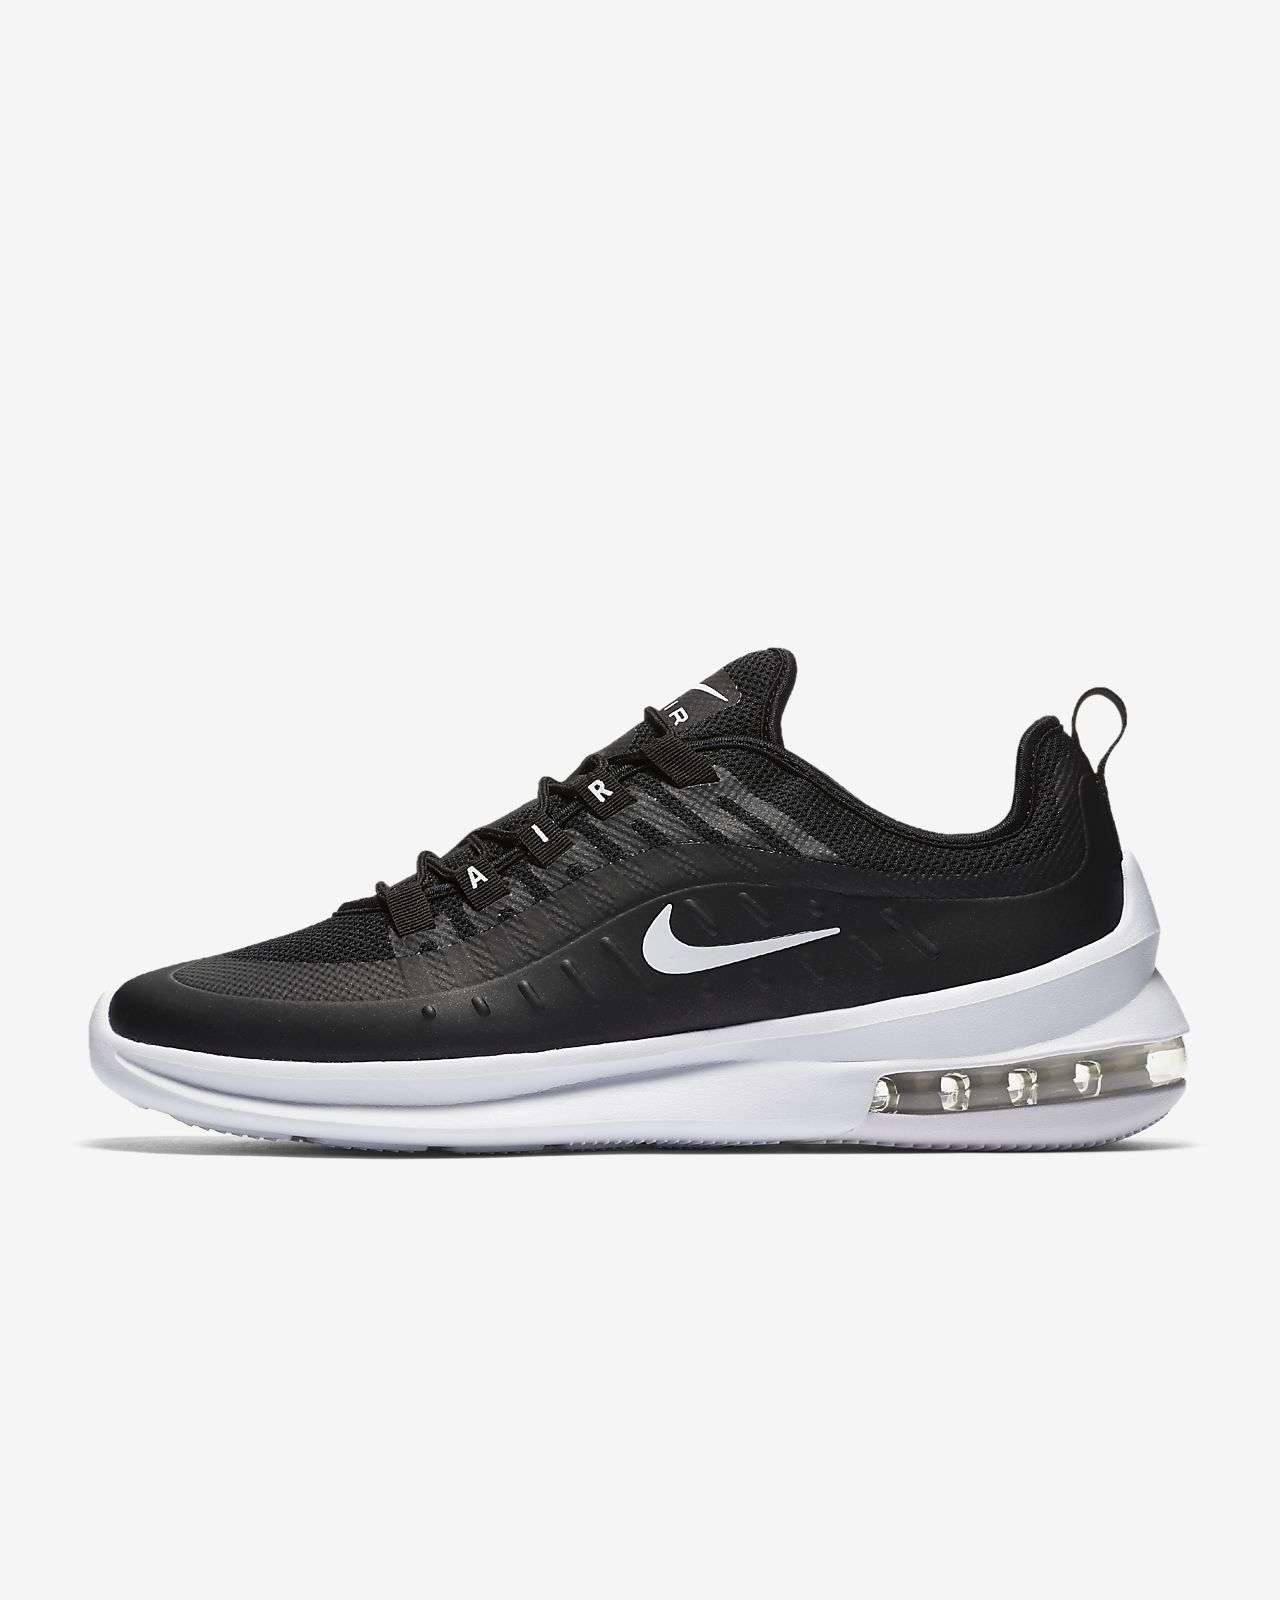 c41ee529ac Nike Air Max Axis Men's Shoe. Nike.com